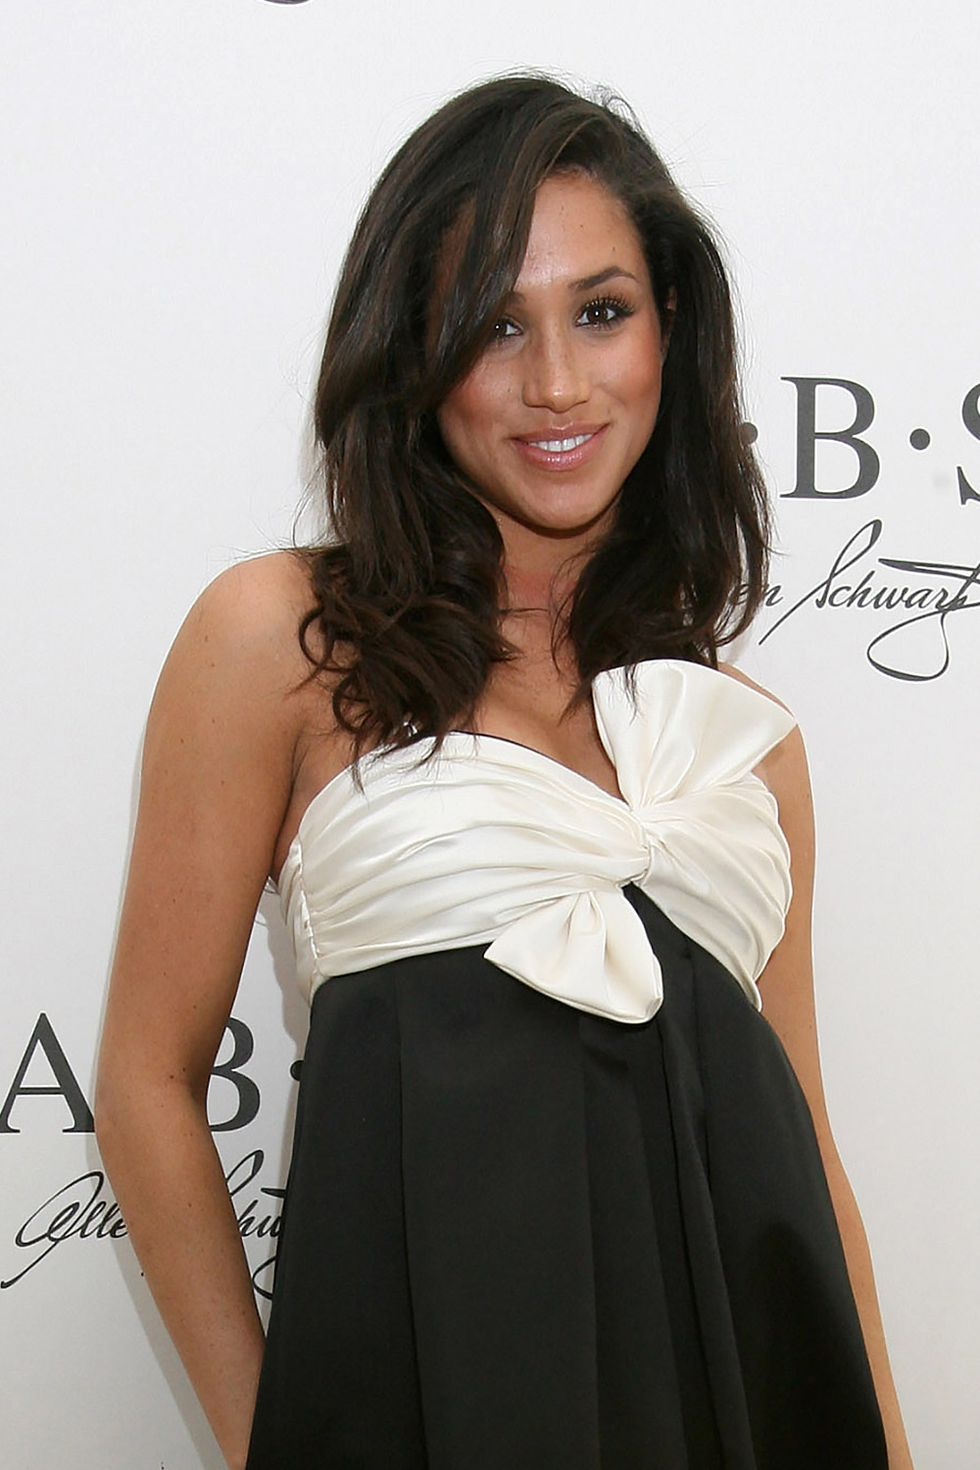 Meghan Markle Hairstyle of all time